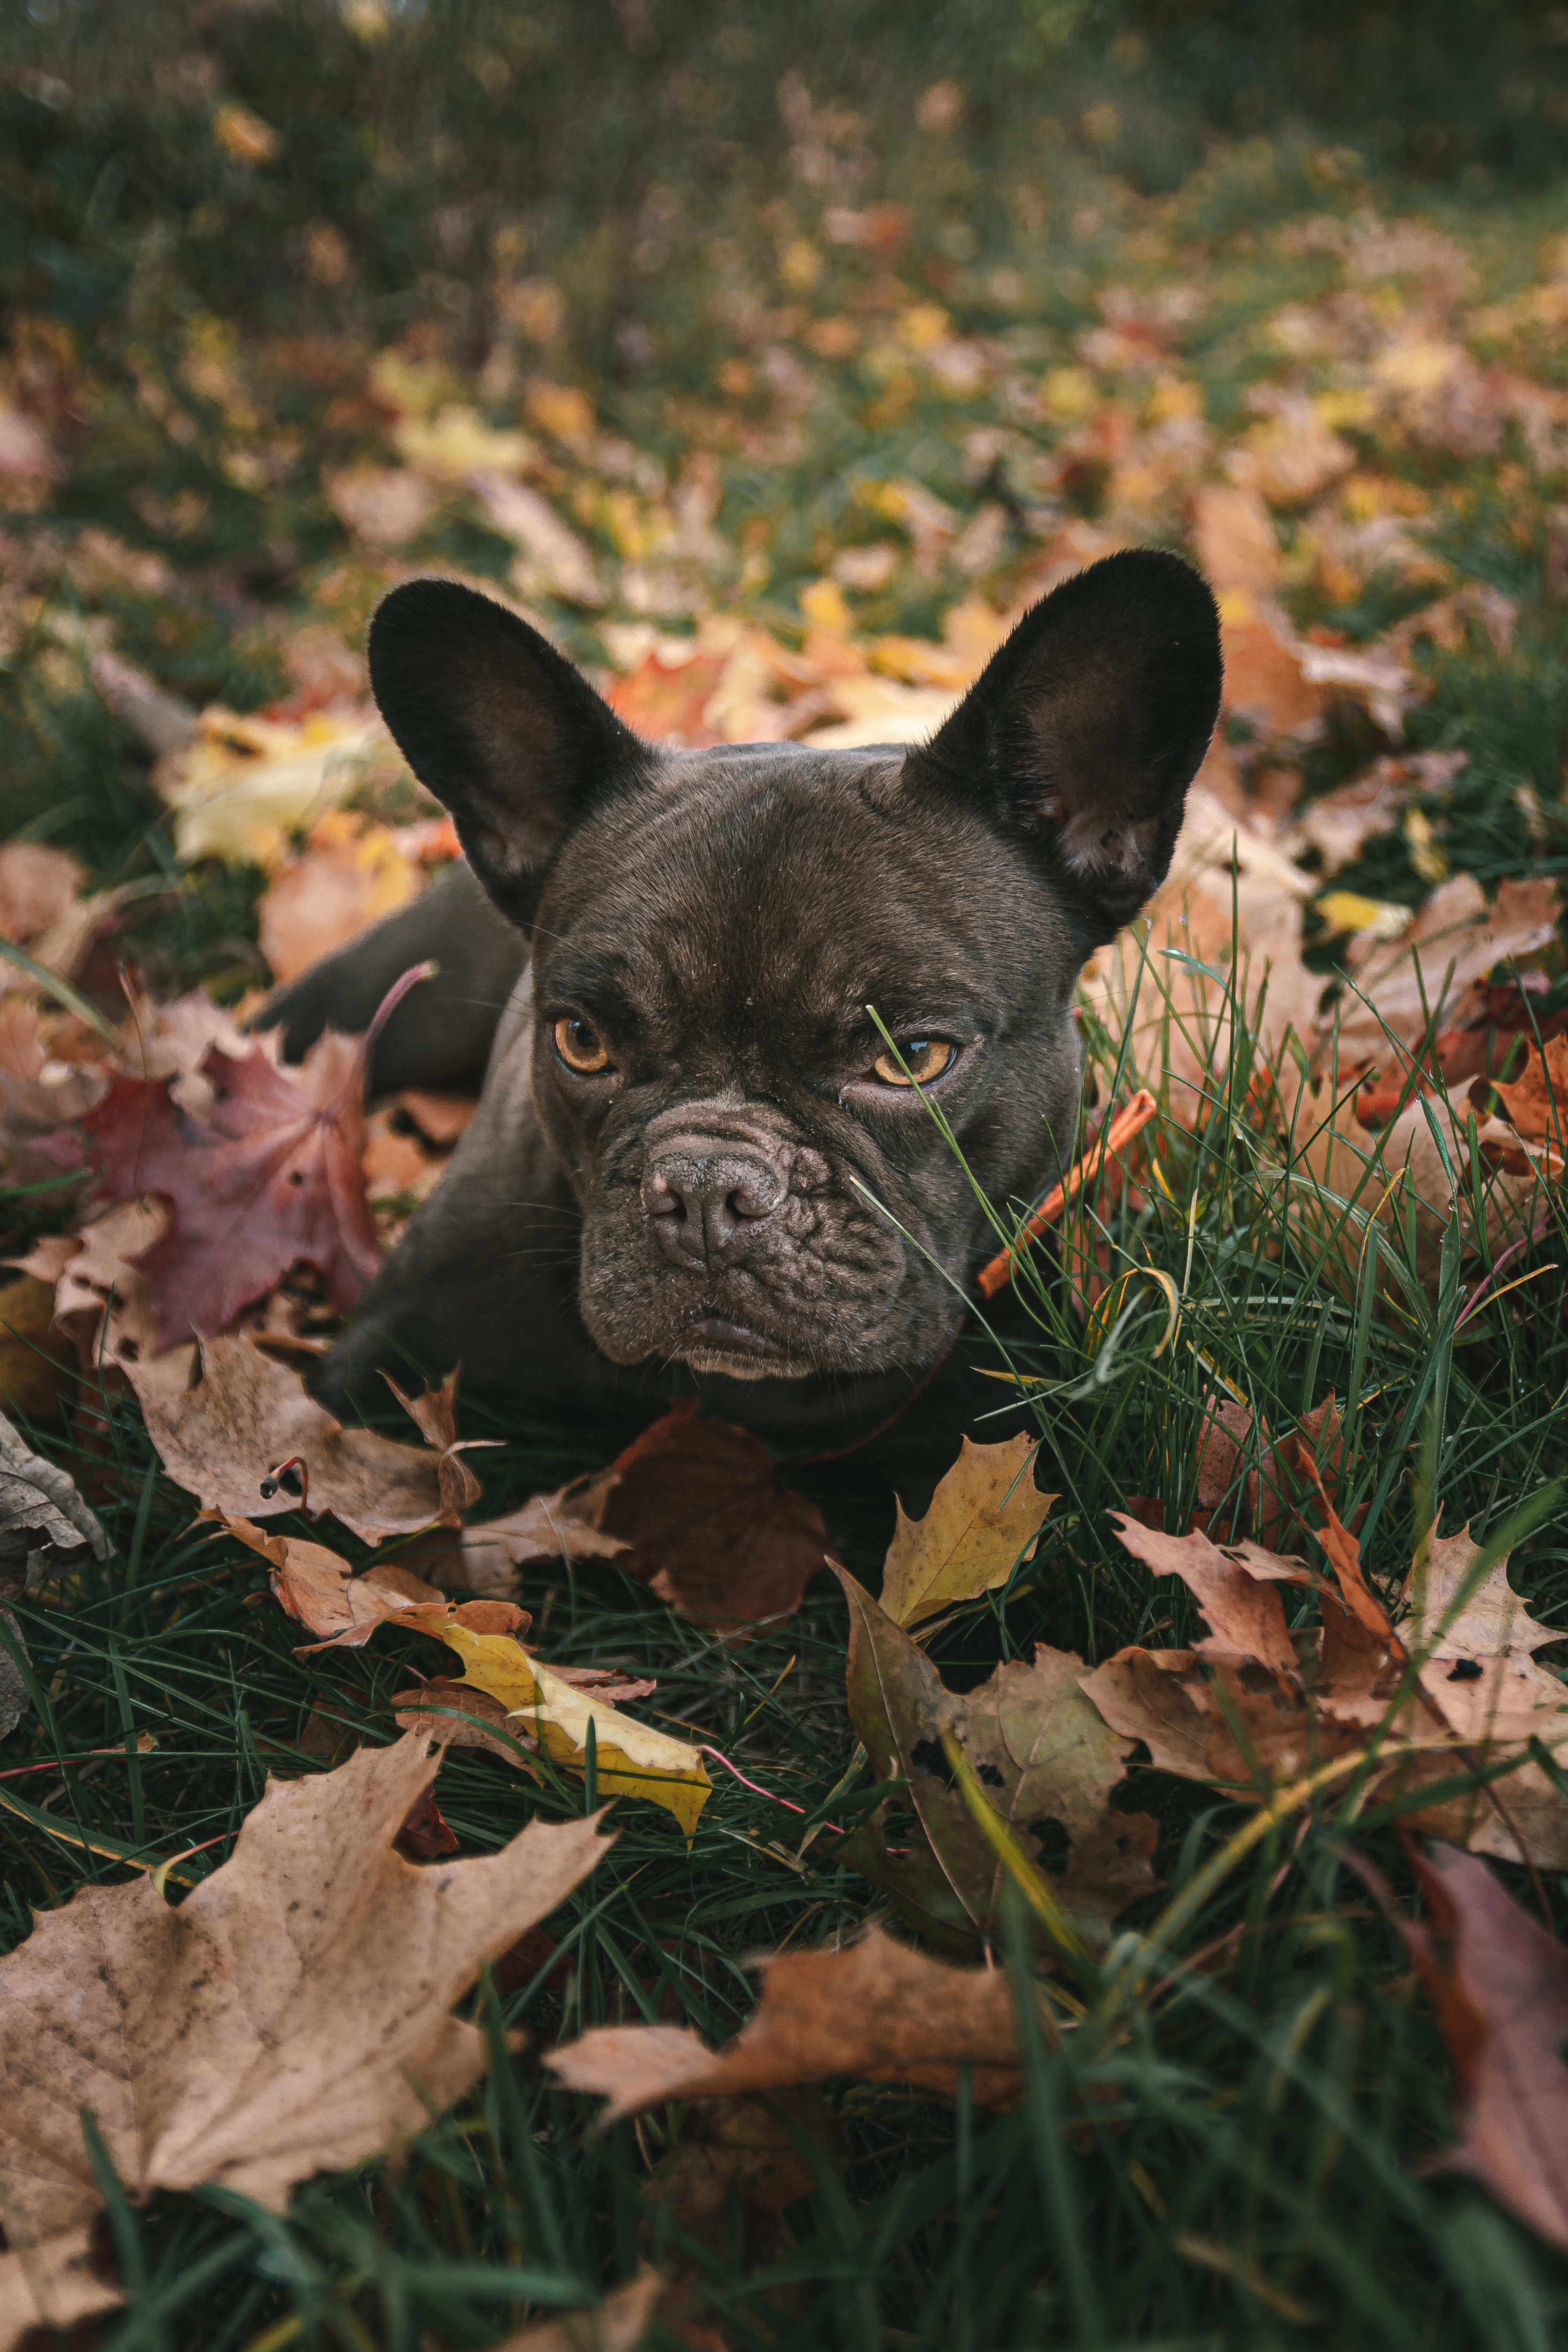 151813 download wallpaper Animals, Pug, Pet, Dog, Grass, Leaves screensavers and pictures for free